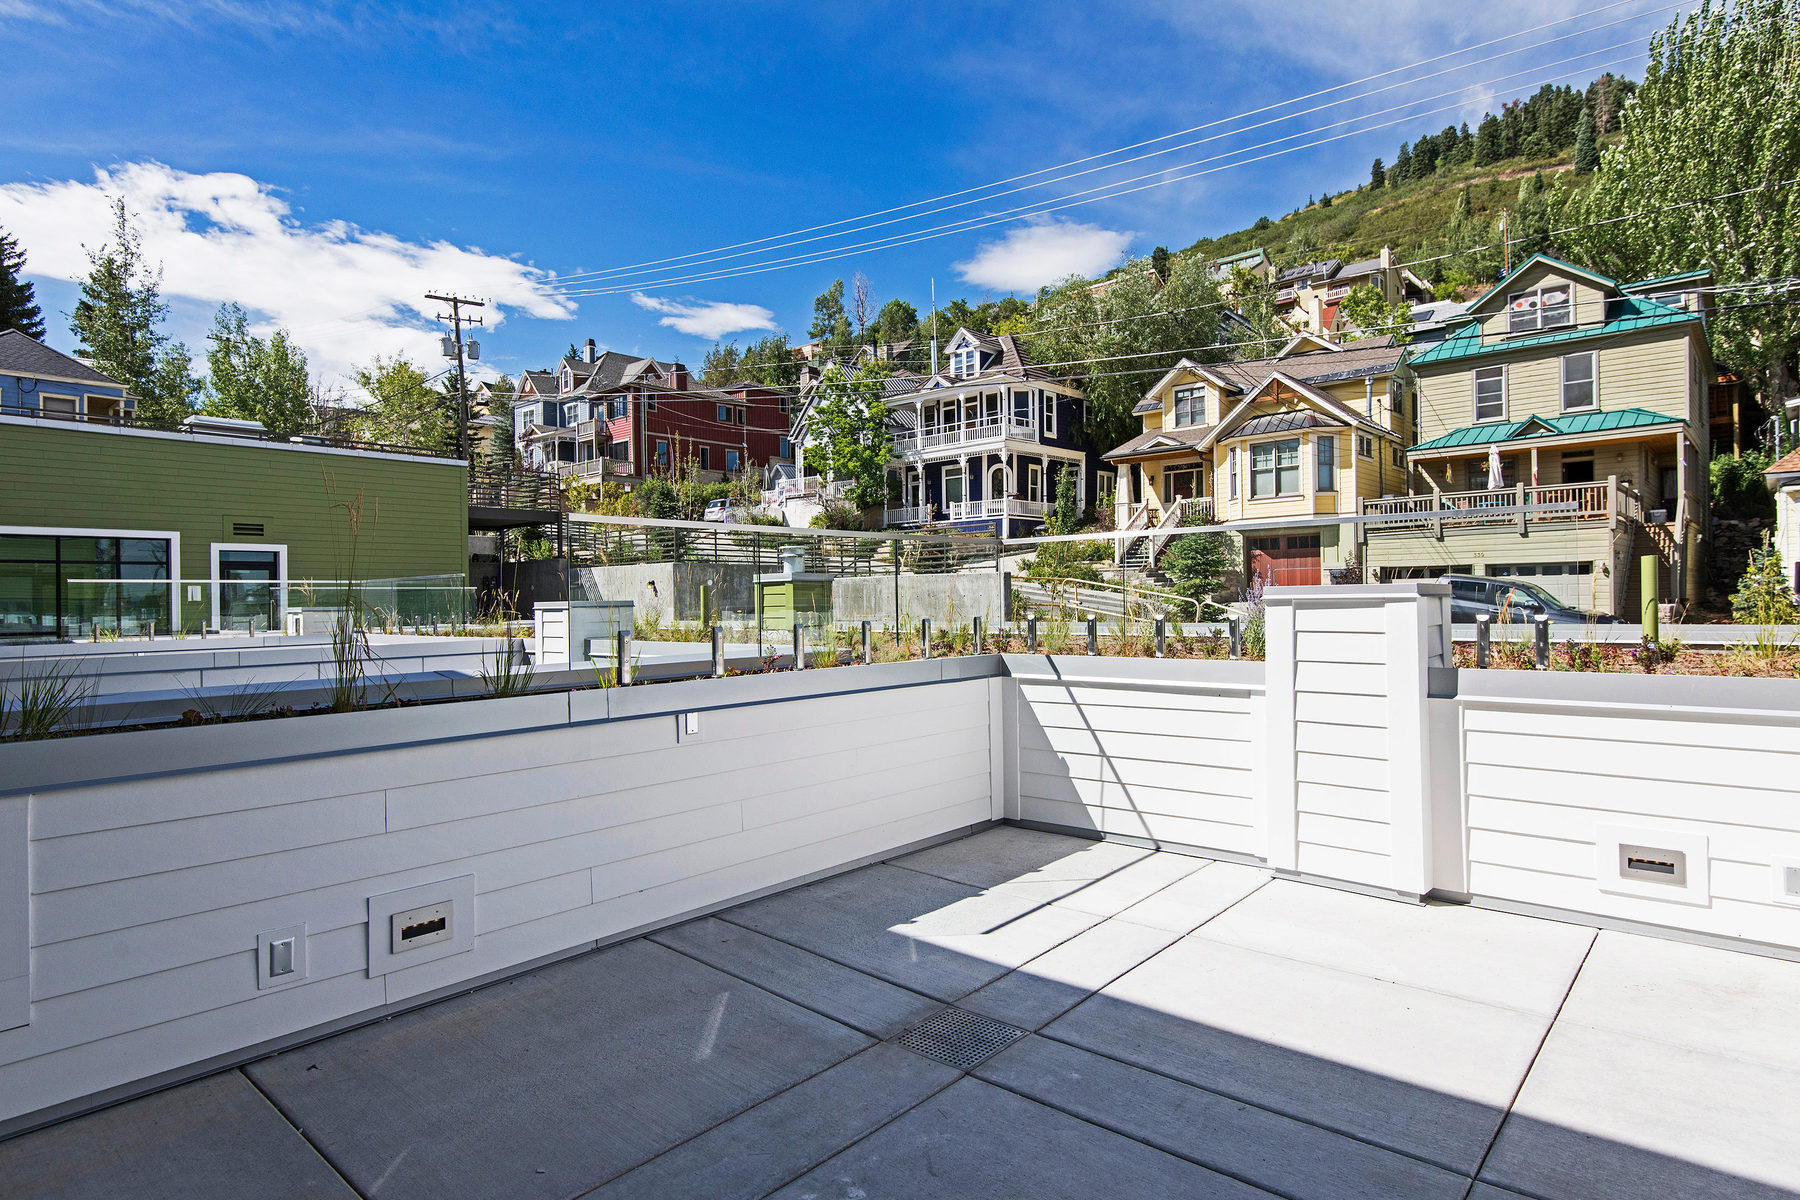 Property For Sale at The Parkite Luxury Condominiums in Park City